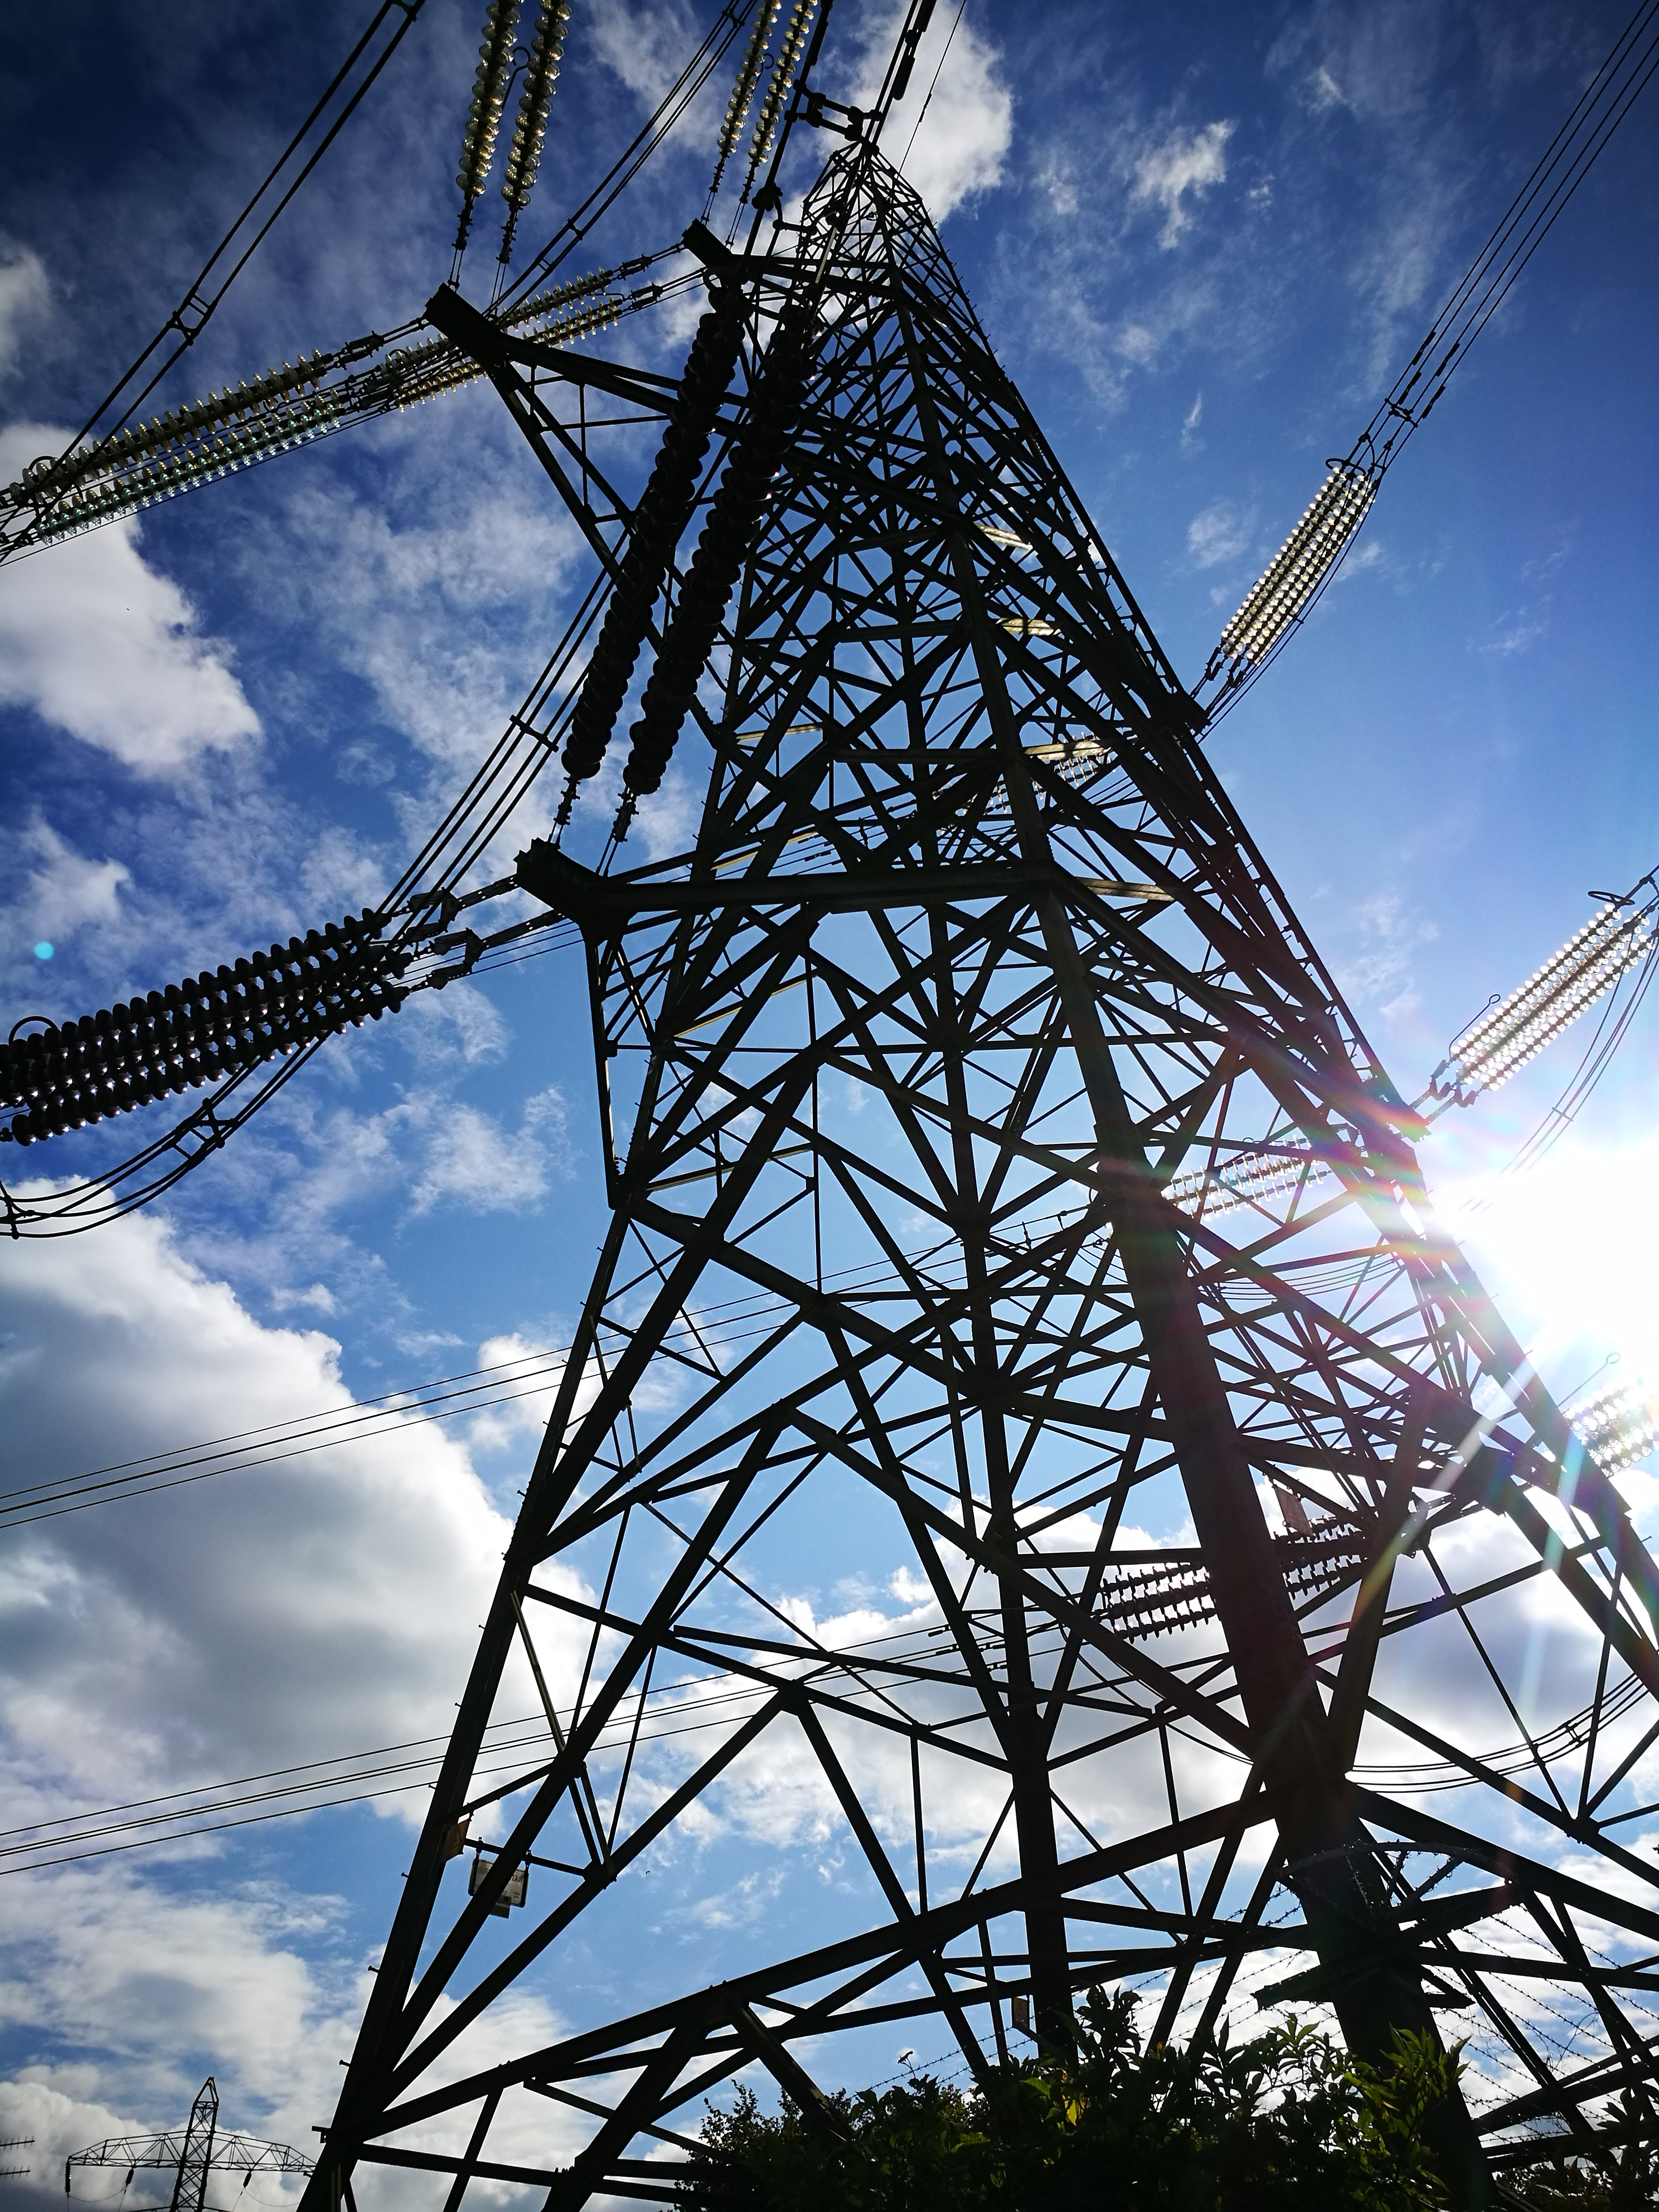 Where can I buy a pylon for home 66